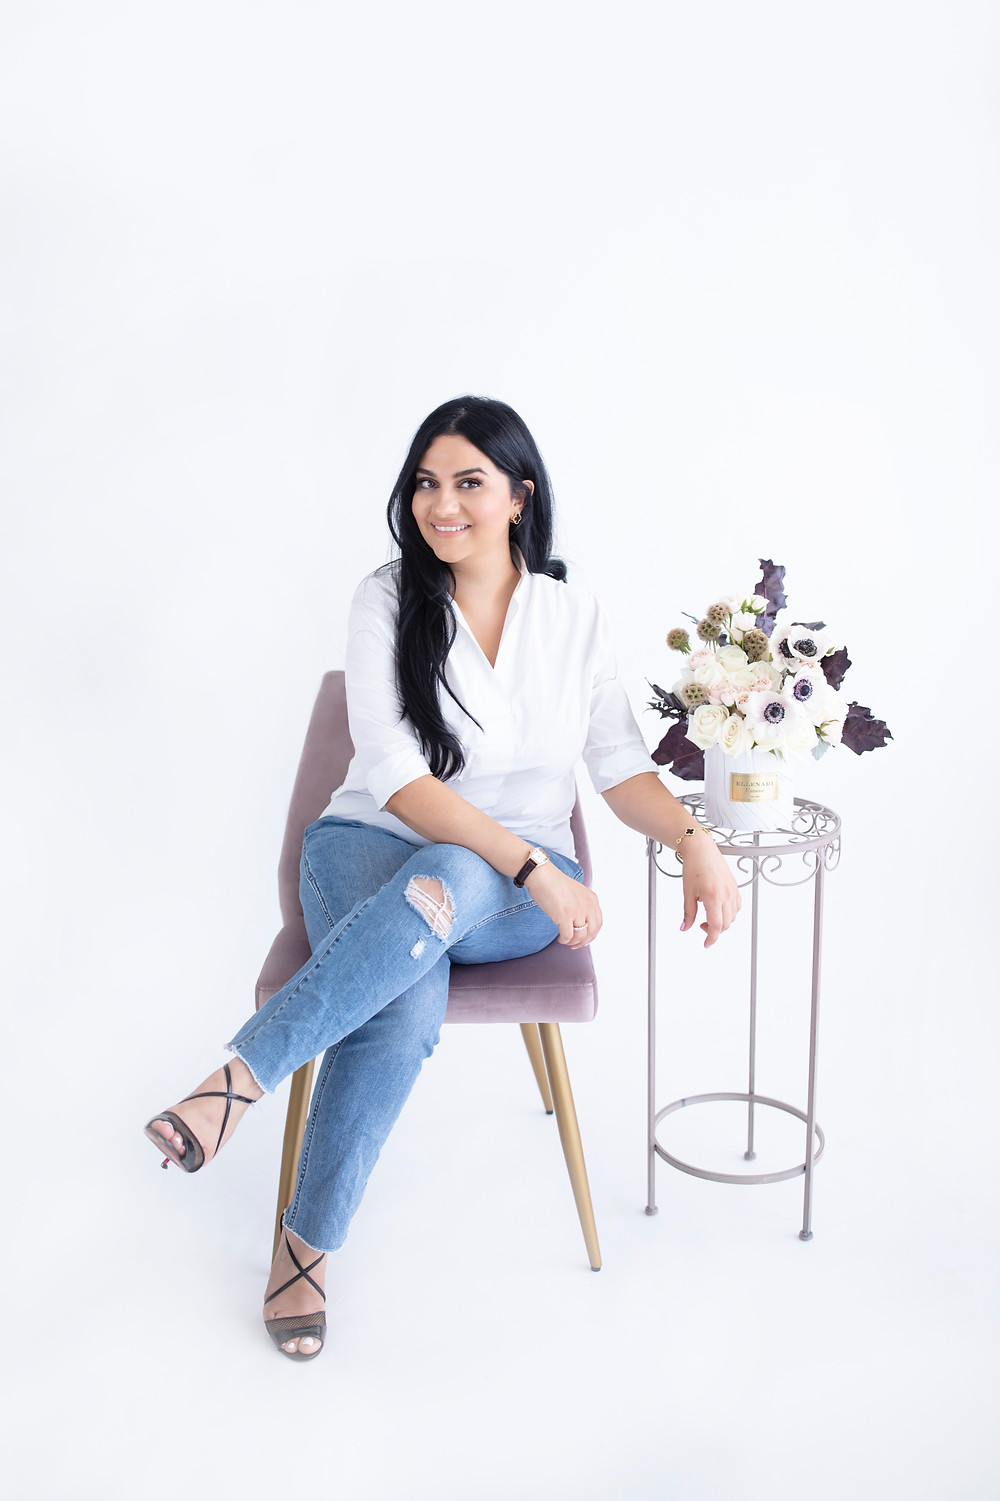 Women with long dark hair sitting down with jeans